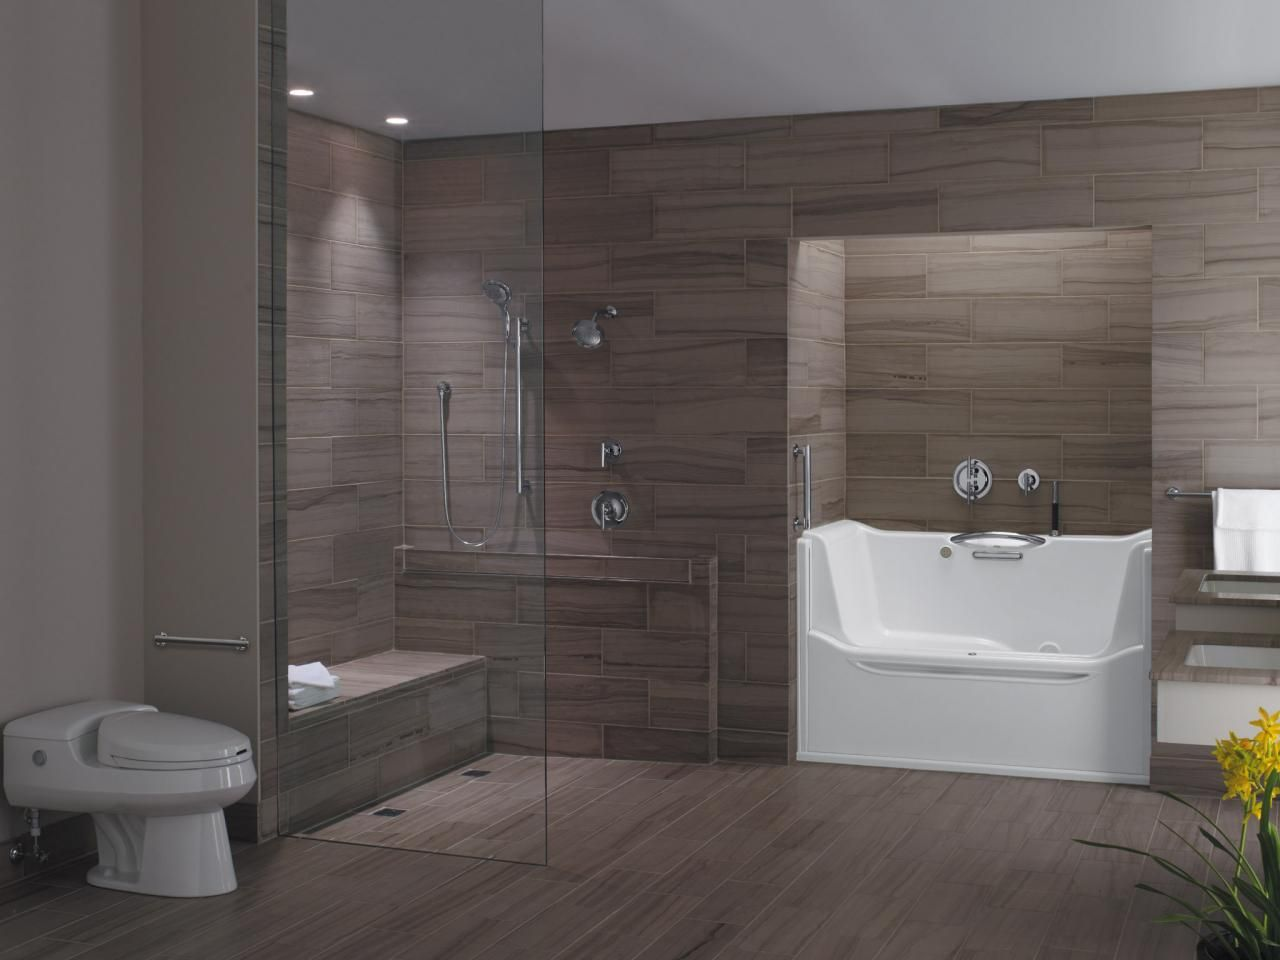 Universal Design Products for the Home | Side wall, Tubs and Walls on remodeling bath, traditional bath, kitchen bath, green bath, tile bath, photography bath, designer bath, ada bath, cabinets bath, contemporary bath,